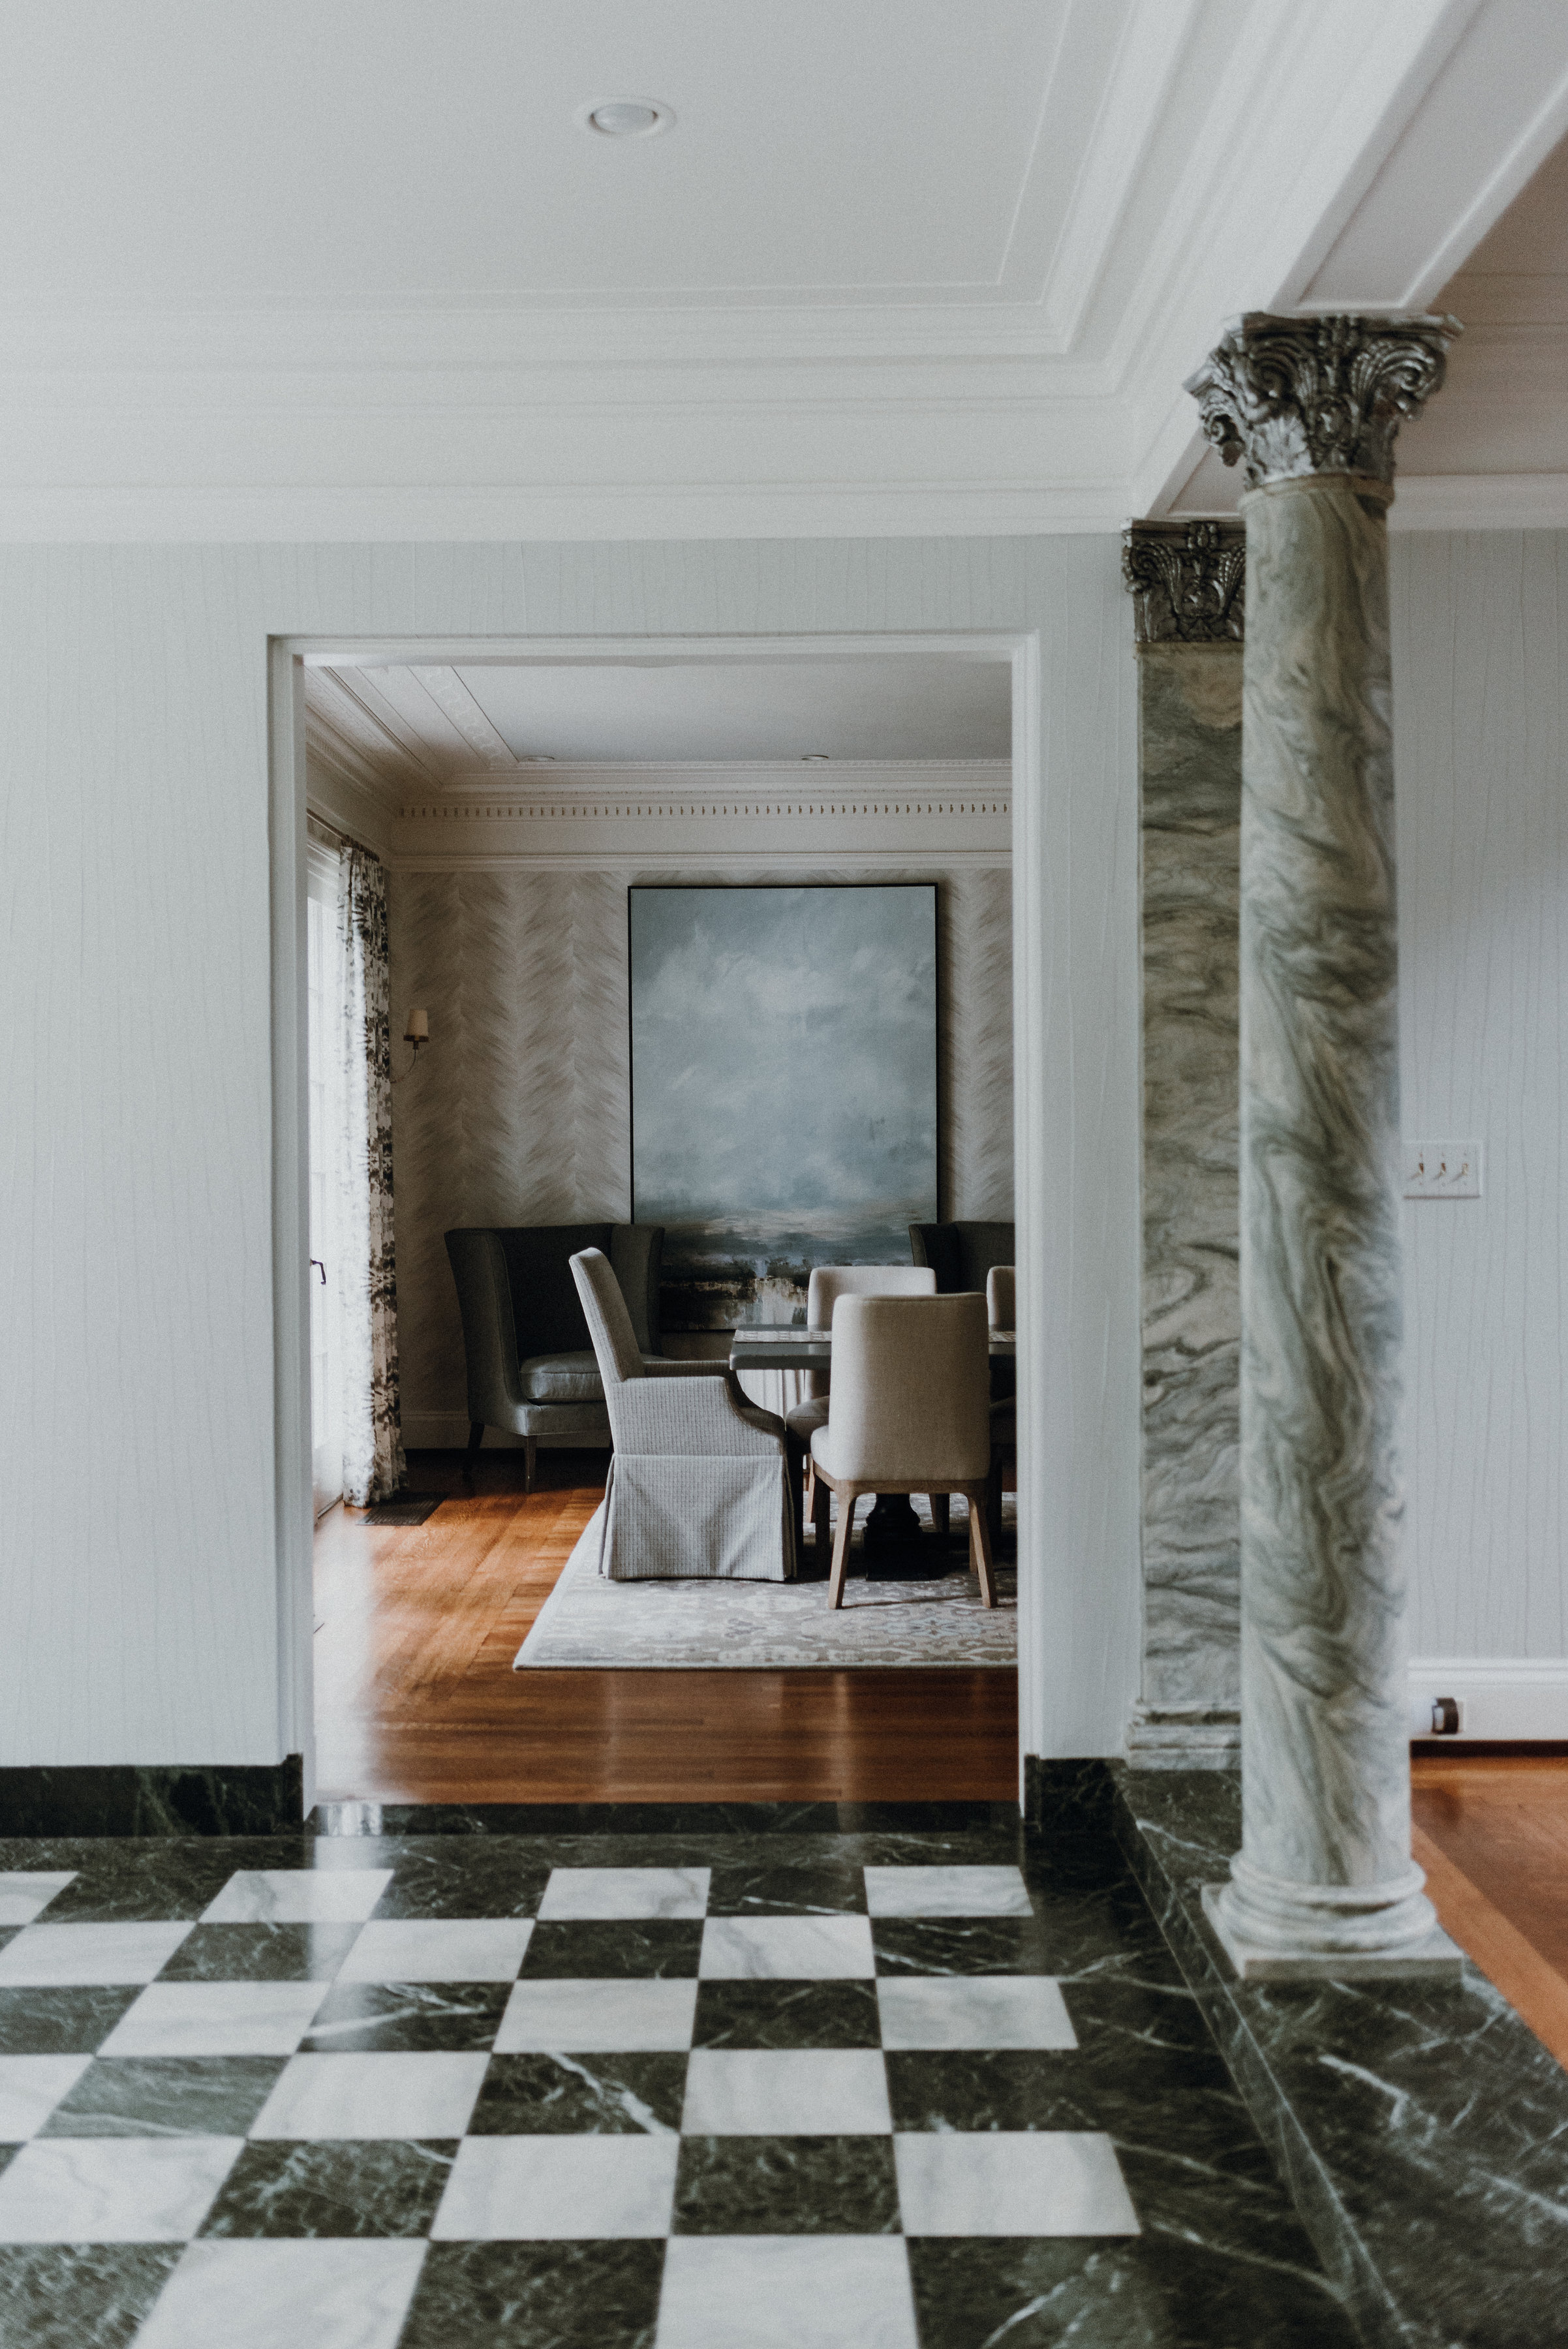 - The estate boasted vaulted ceilings and expansive floors yearning for the perfect furnishings to make it feel like home. Dawn drew inspiration from opulent accents—original marble checkerboard flooring and light-green tinted columns. Dawn opted for a desaturated palette and soft texture to complement the historic materials.